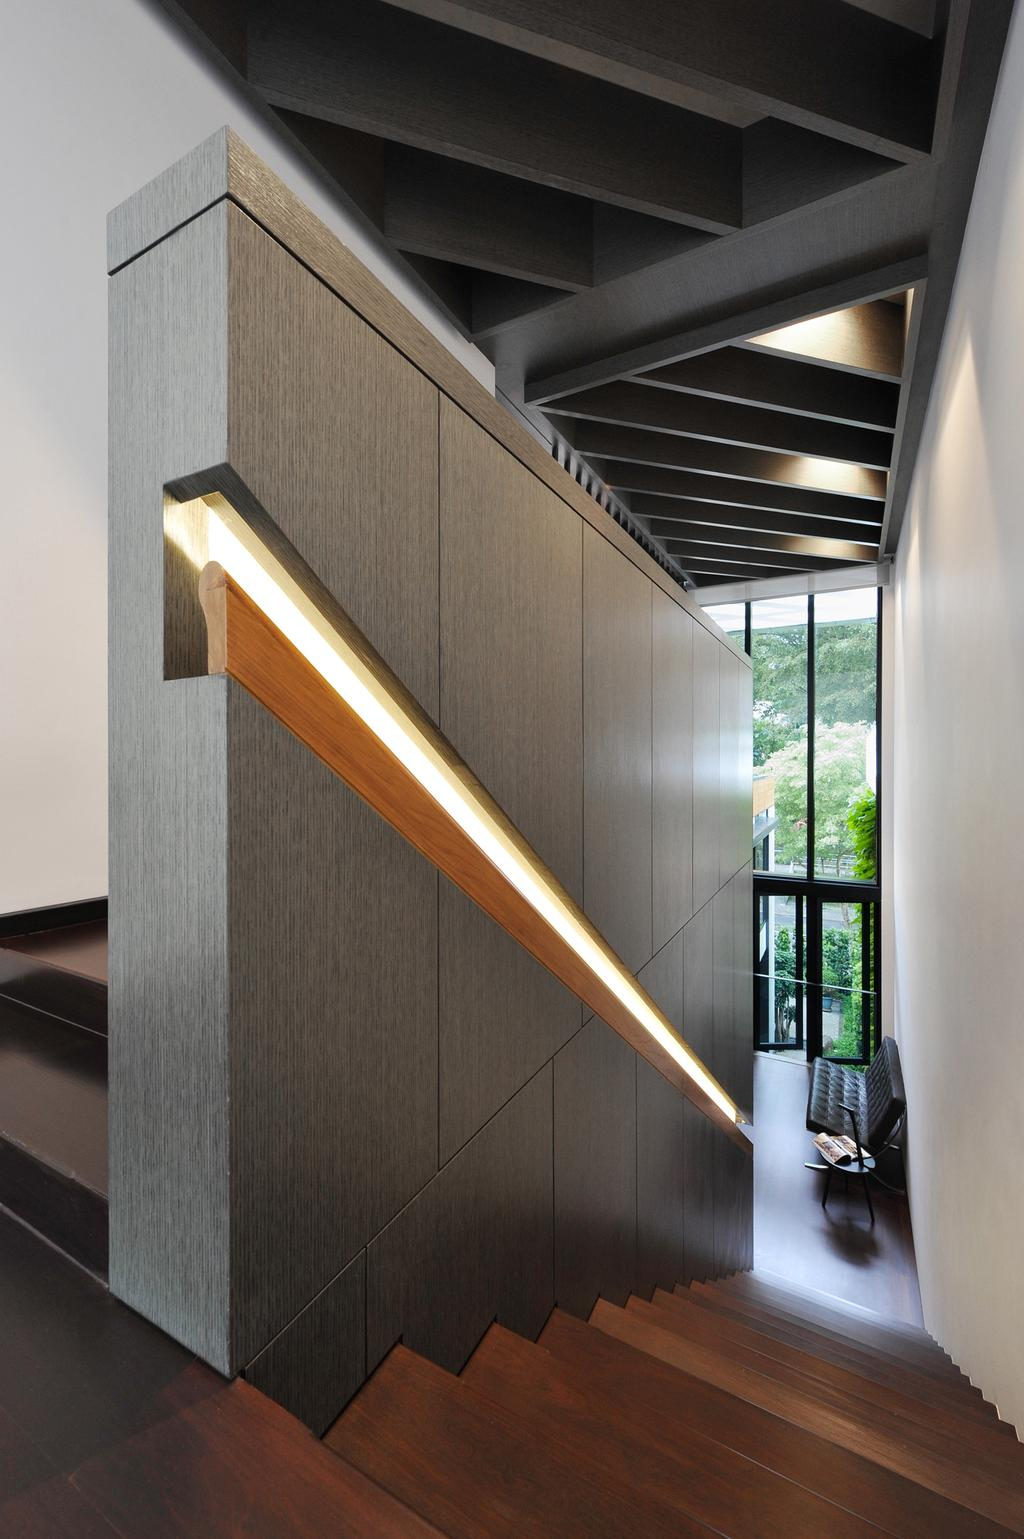 Modern, Landed, 66 WTR, Architect, BHATCH Architects, Stairs, Staircase, Handrails, Recessed Lighting, Indented Lighting, Tile, Tiles, Gray, High Ceiling, Full Length Windows, Sofa, Quilted, Glass Doors